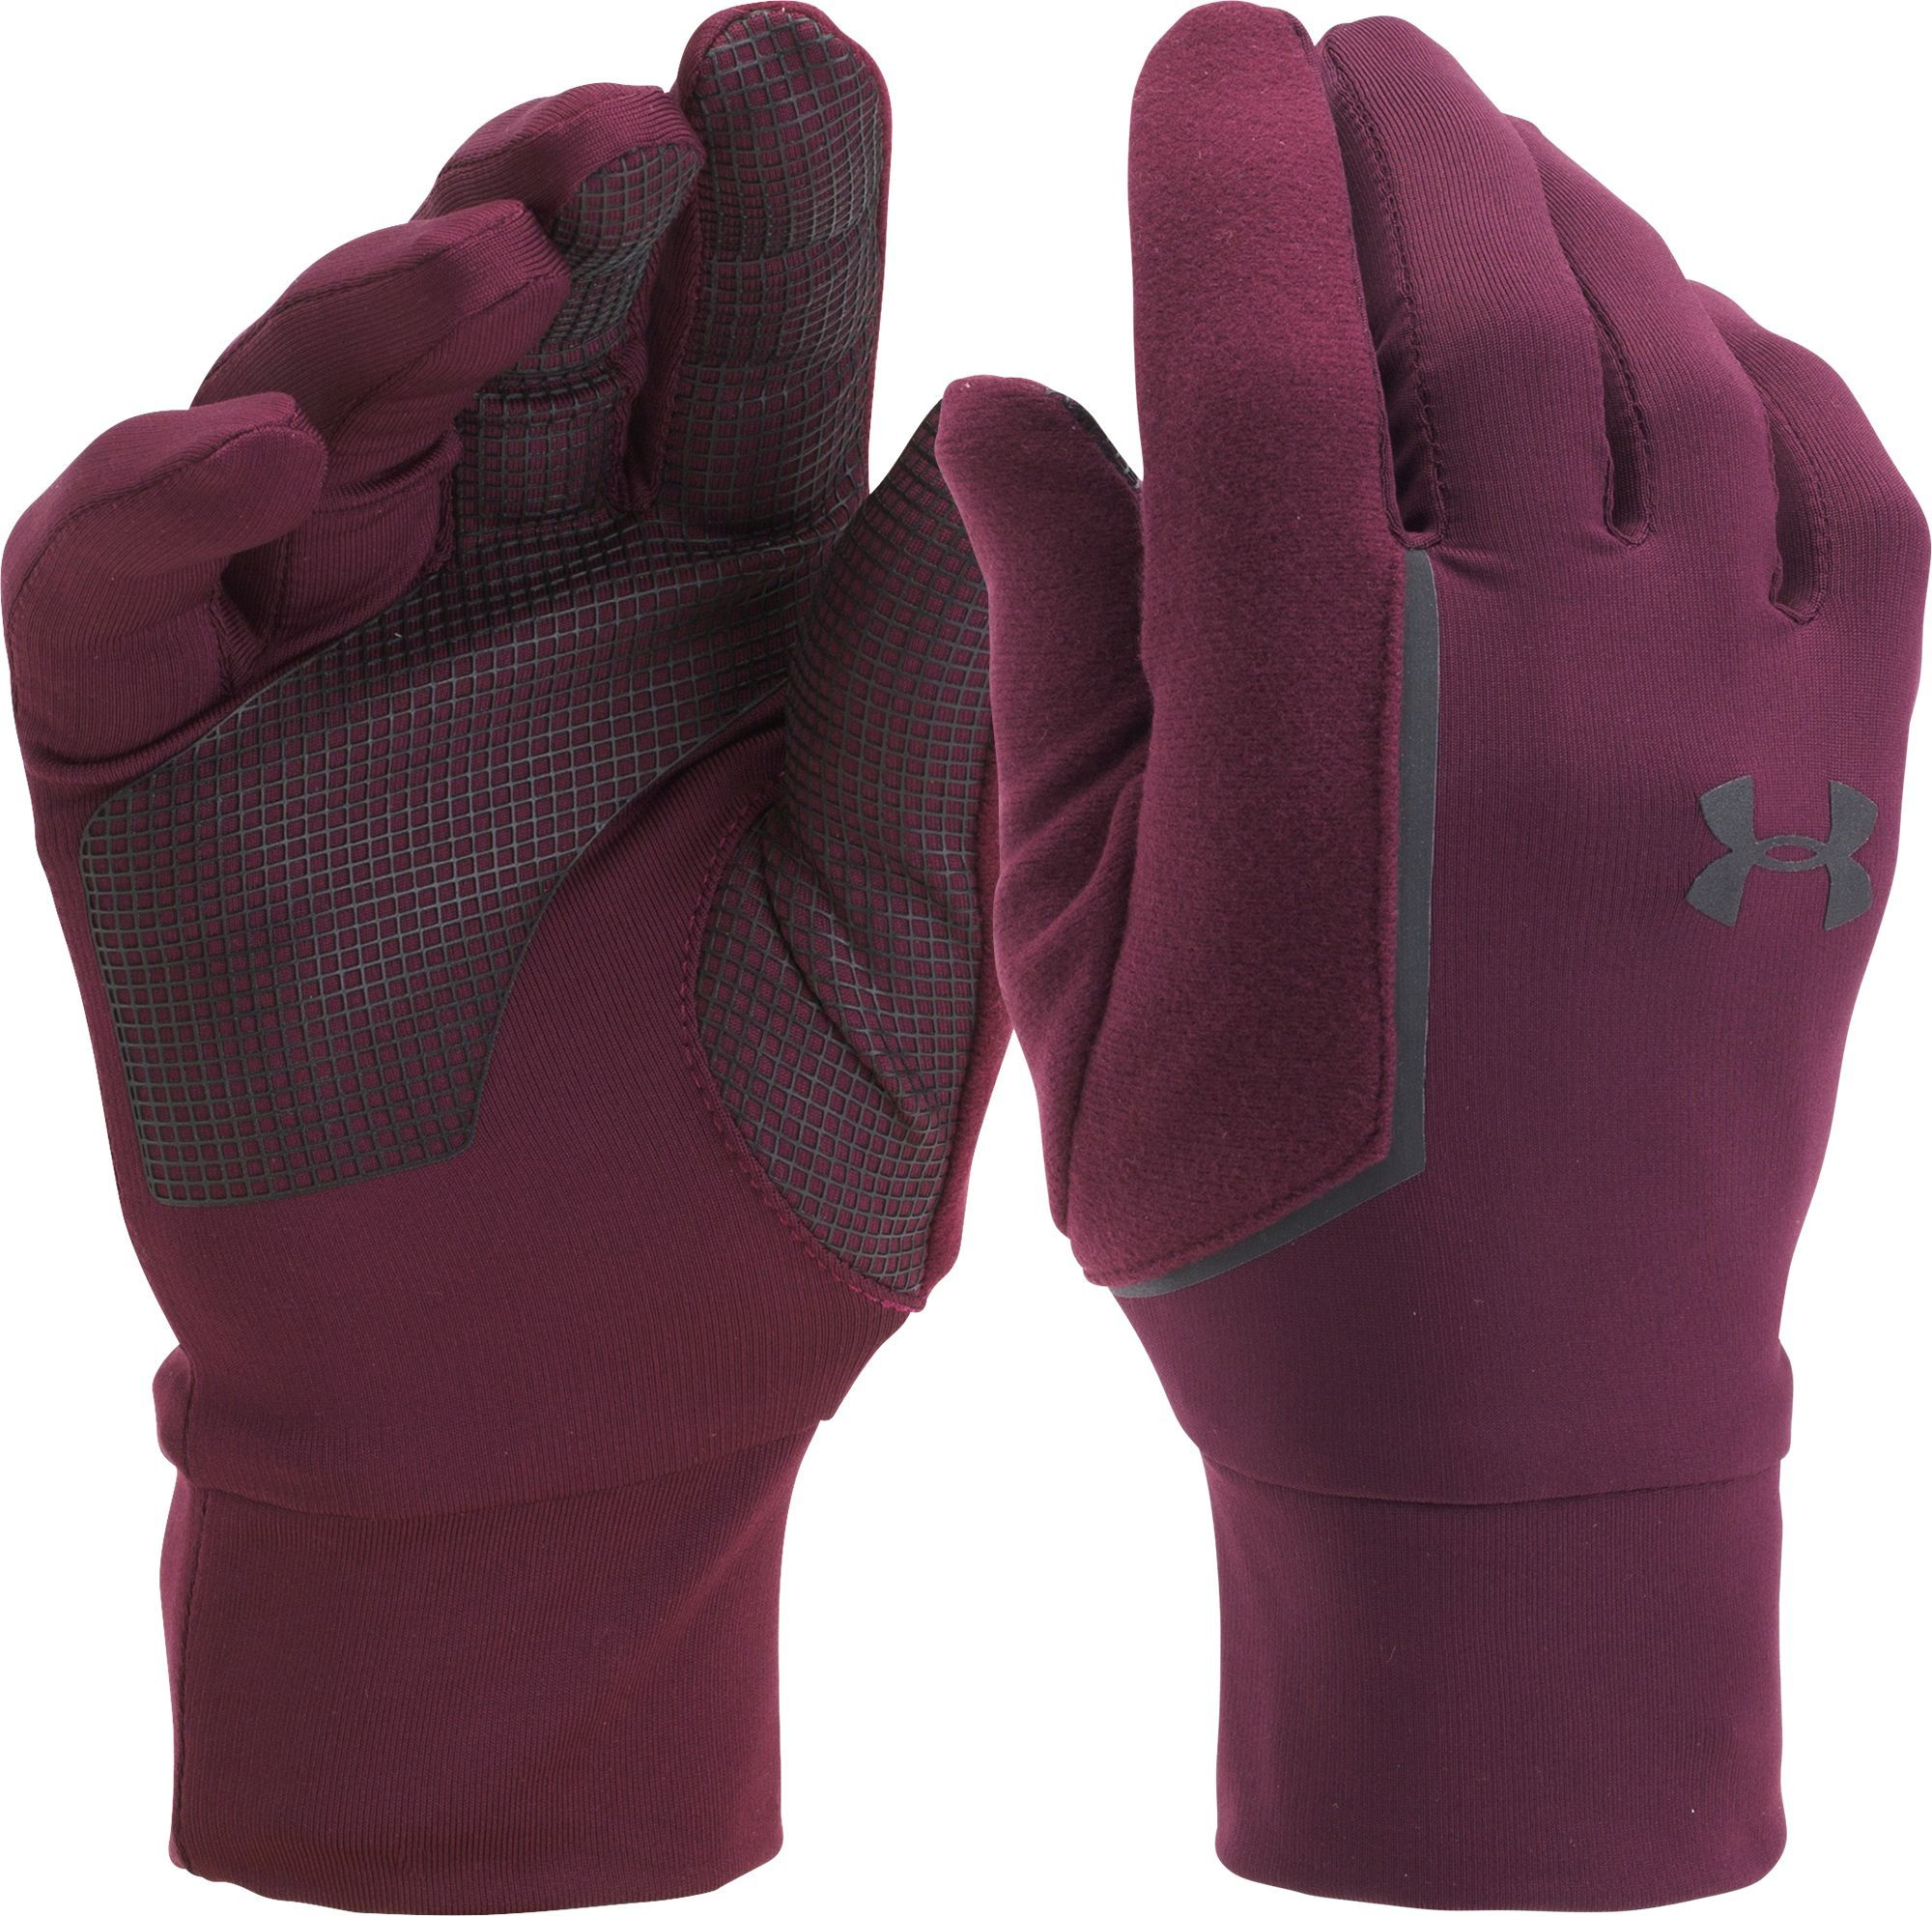 Under Armour Men's No Breaks Armour Liner Gloves, Size